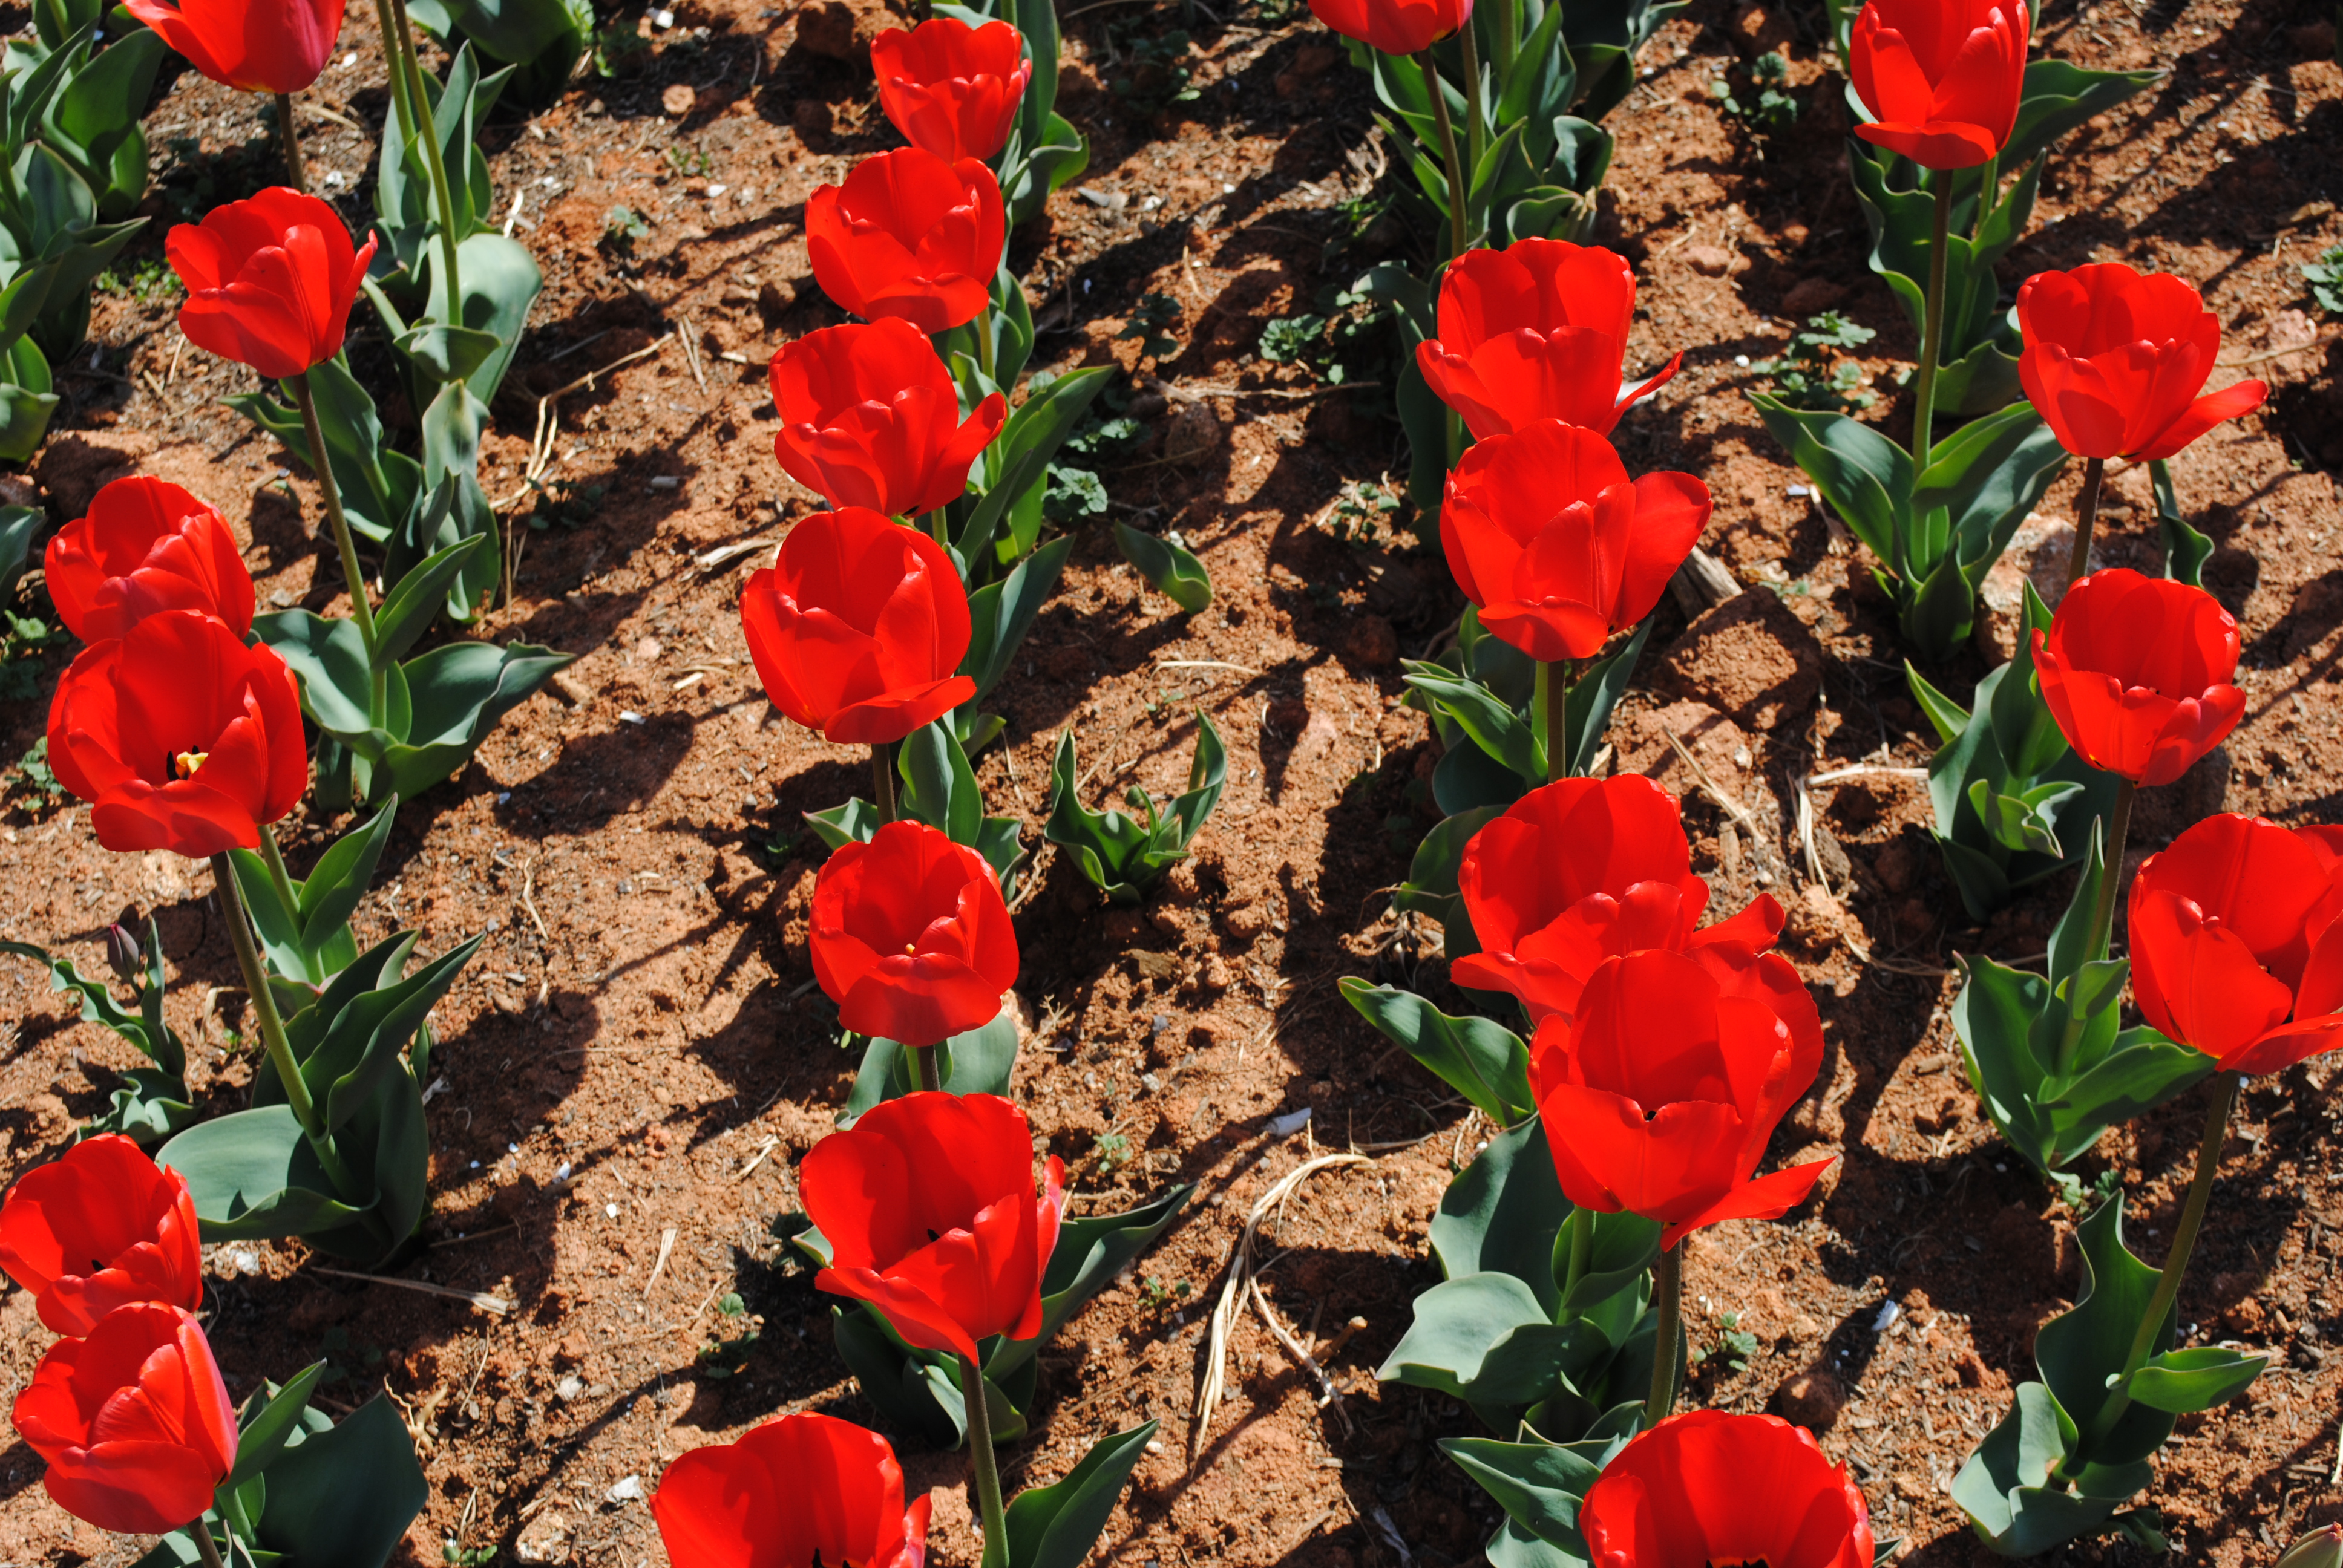 Red Tulips, Flowers, Red, Tulips, HQ Photo